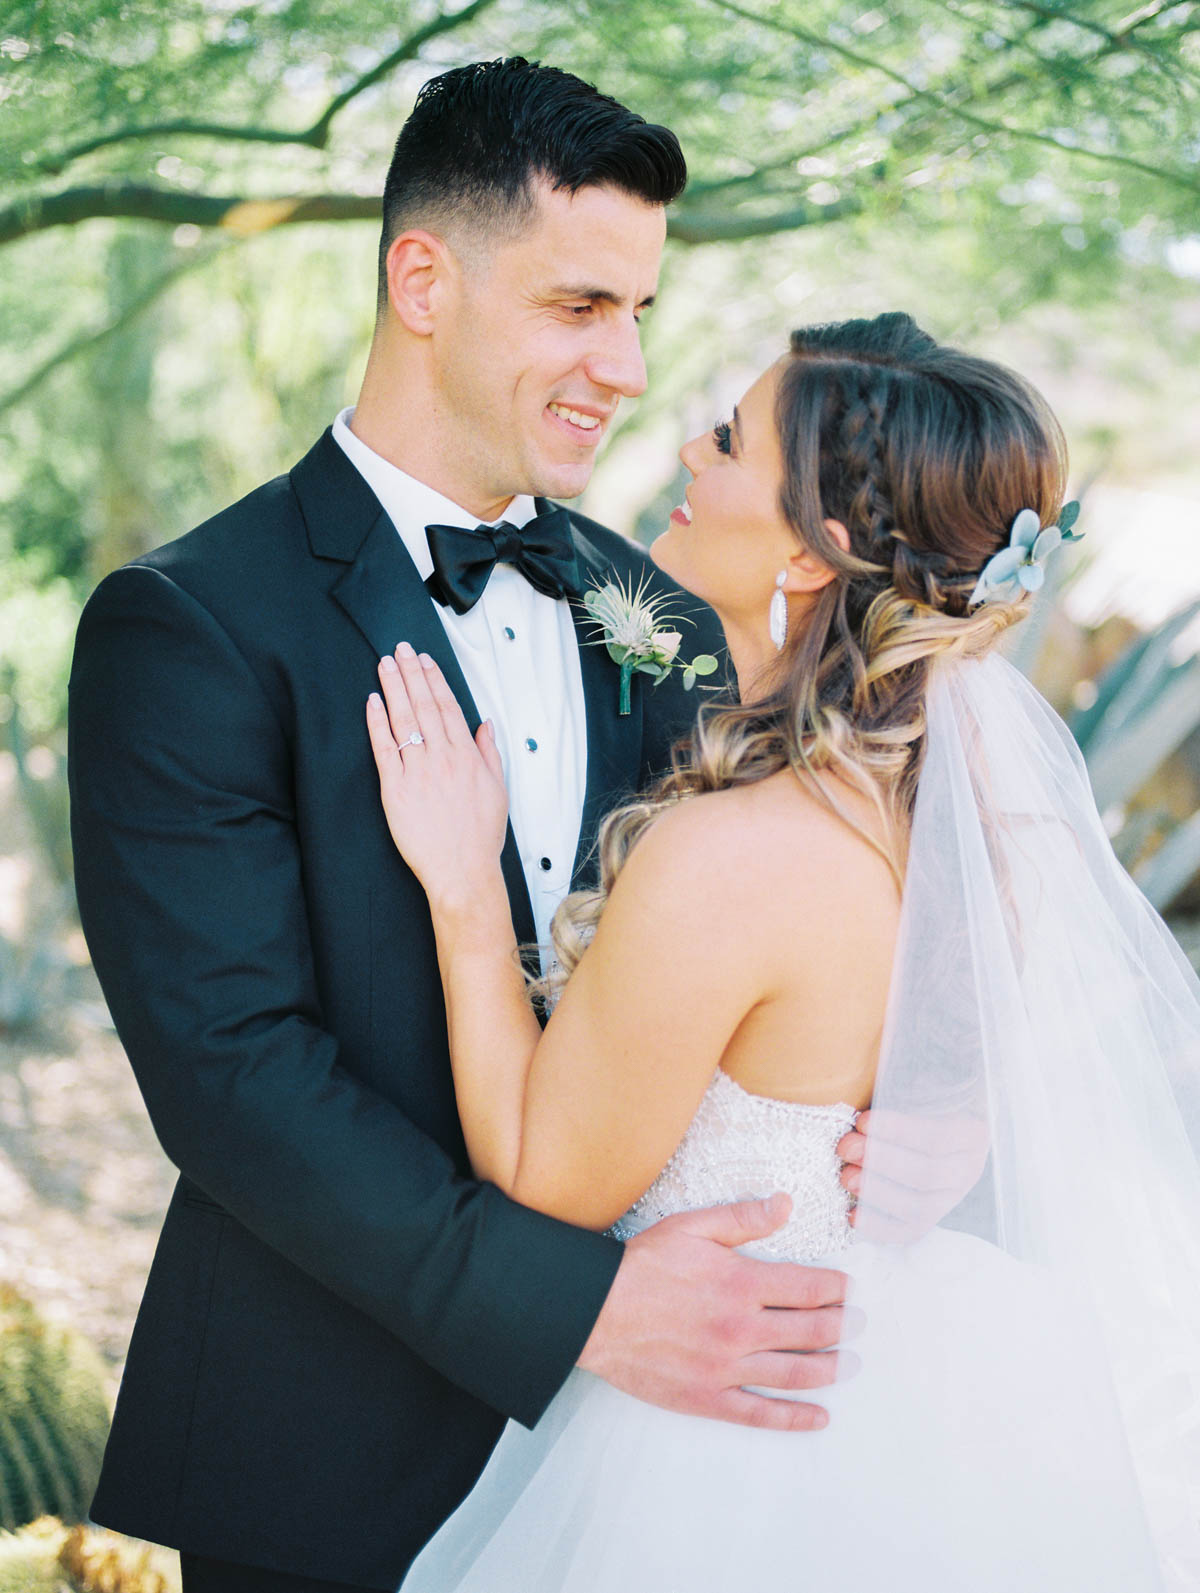 Bride & groom smiling at each other captured by Tucson Wedding Photographers Betsy & John